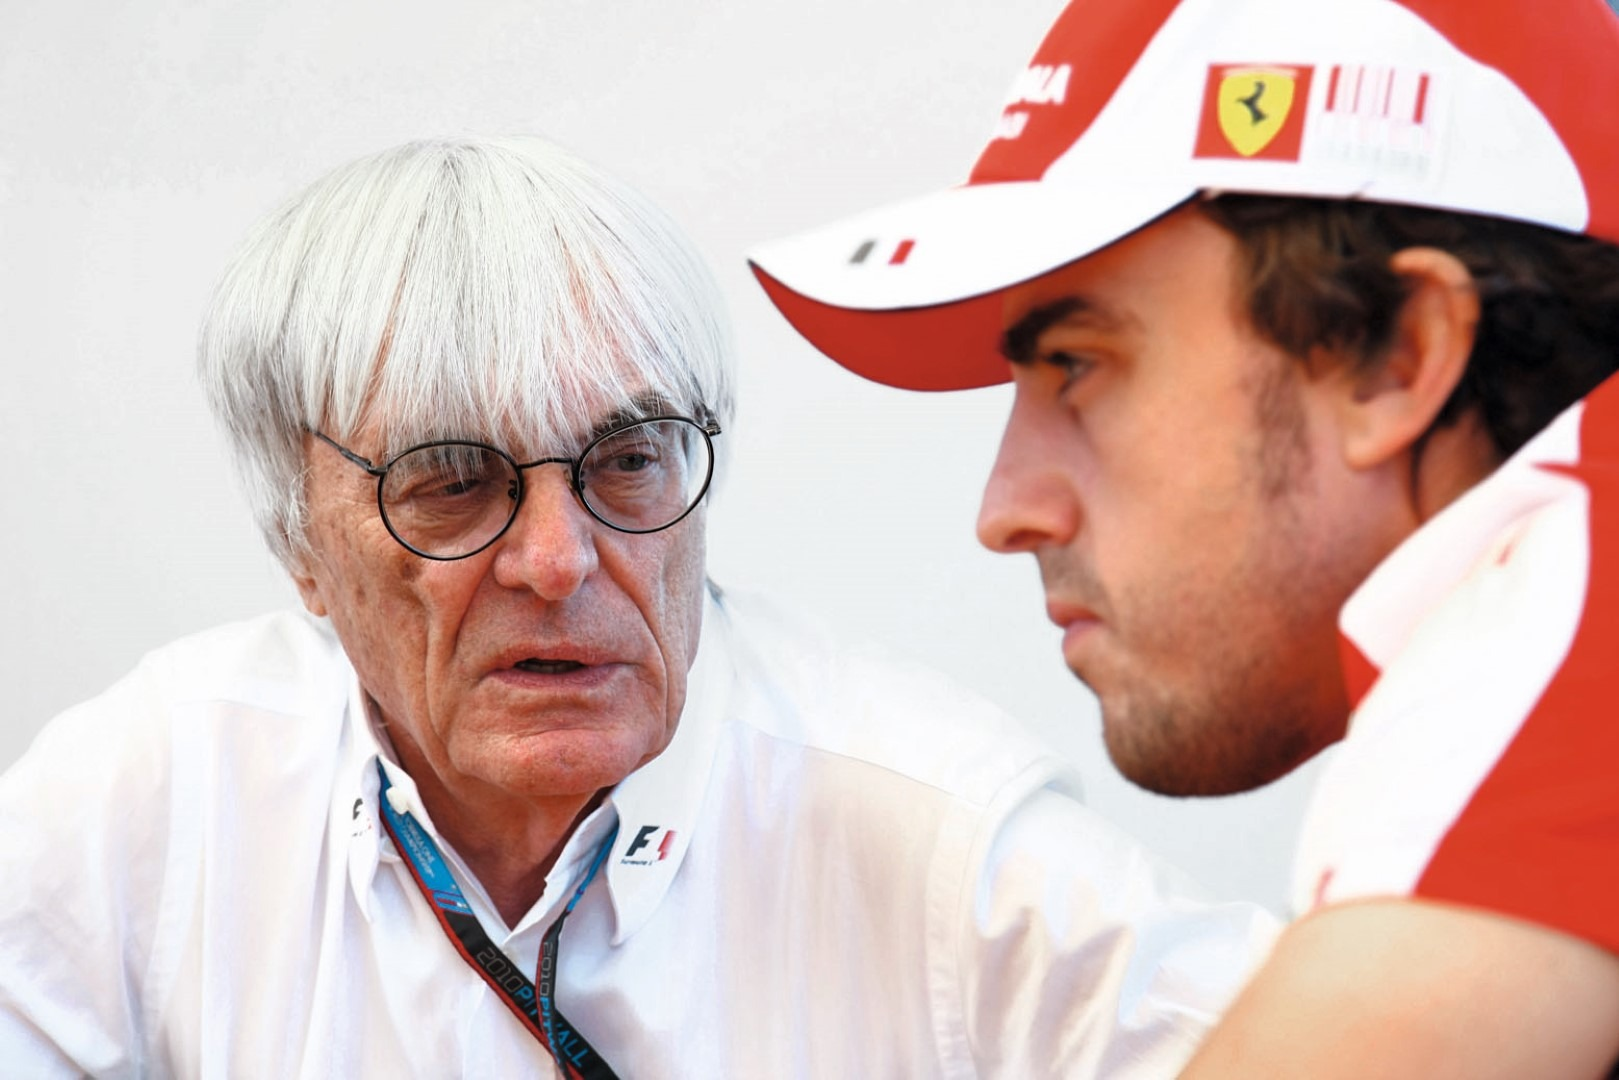 Prospects are not good as Ecclestone trial begins